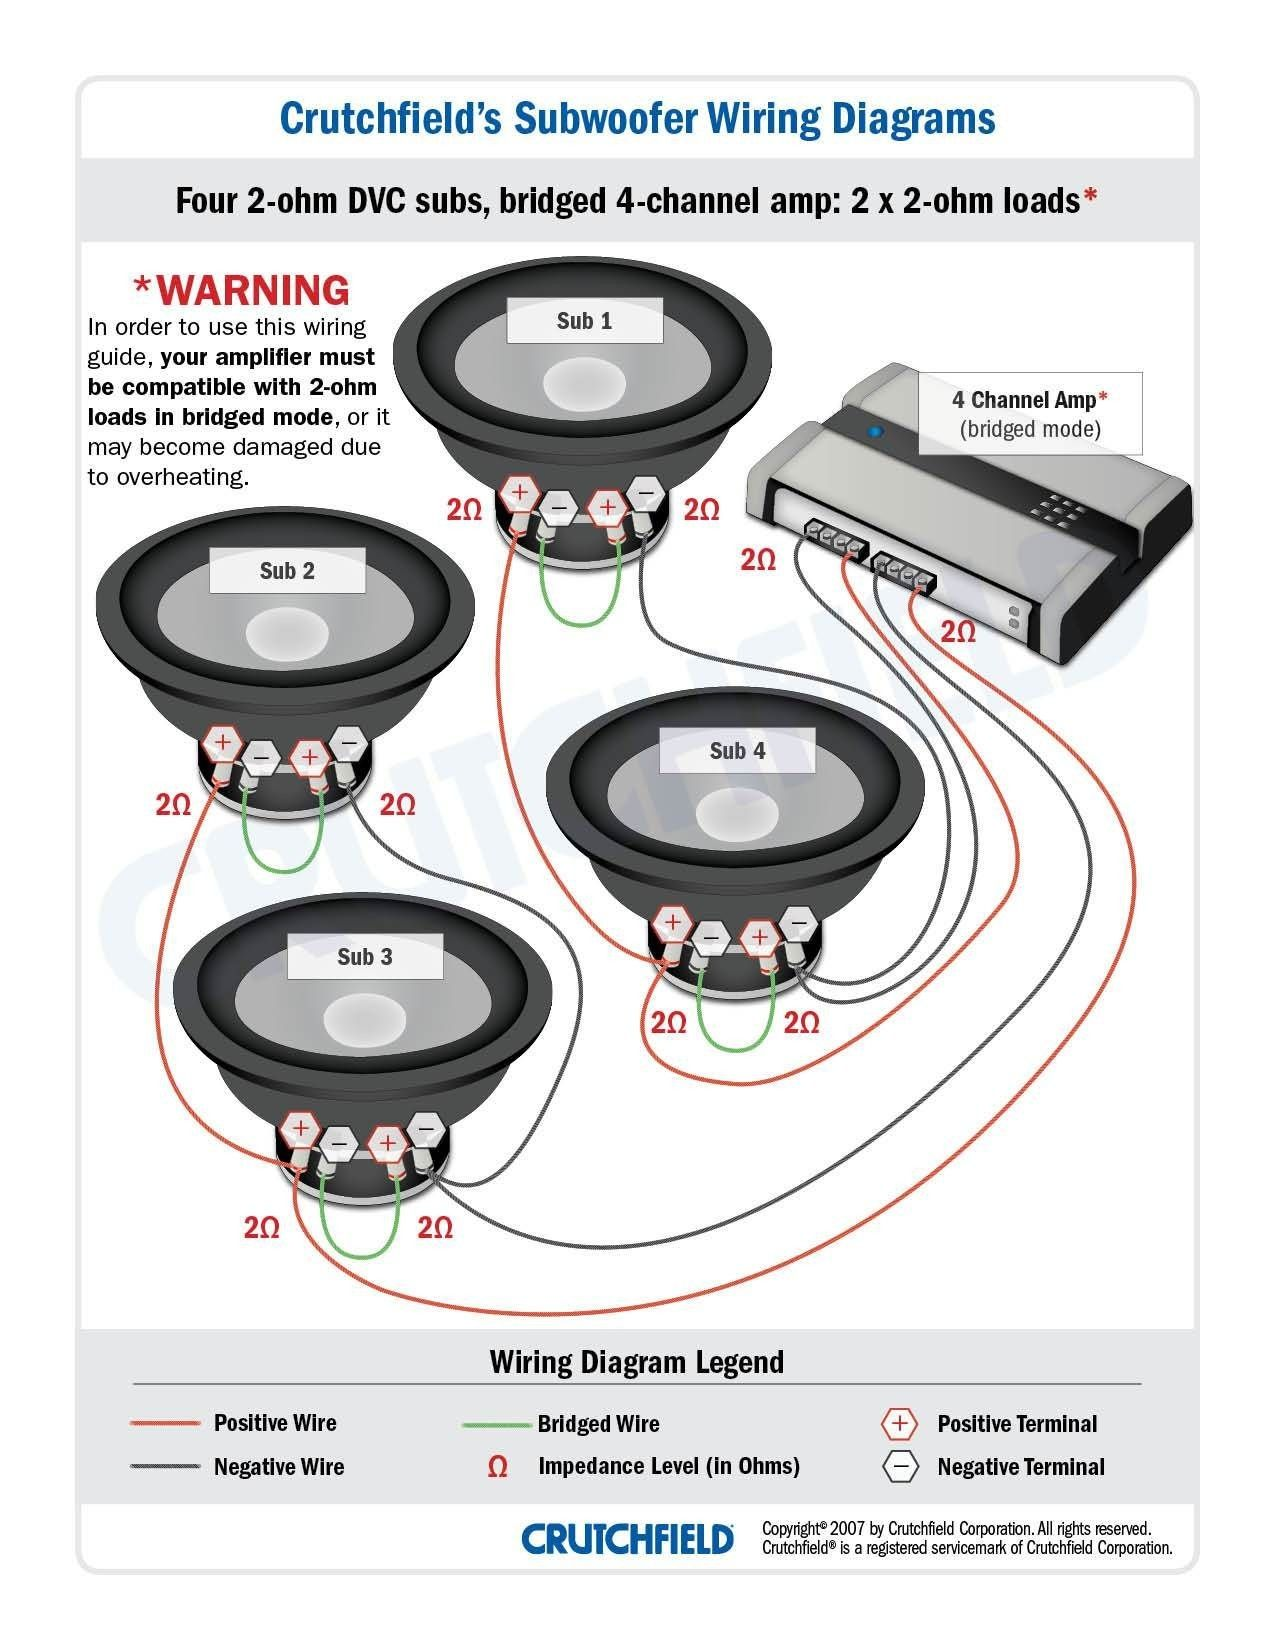 3 Subwoofer Wiring Diagram from static-resources.imageservice.cloud